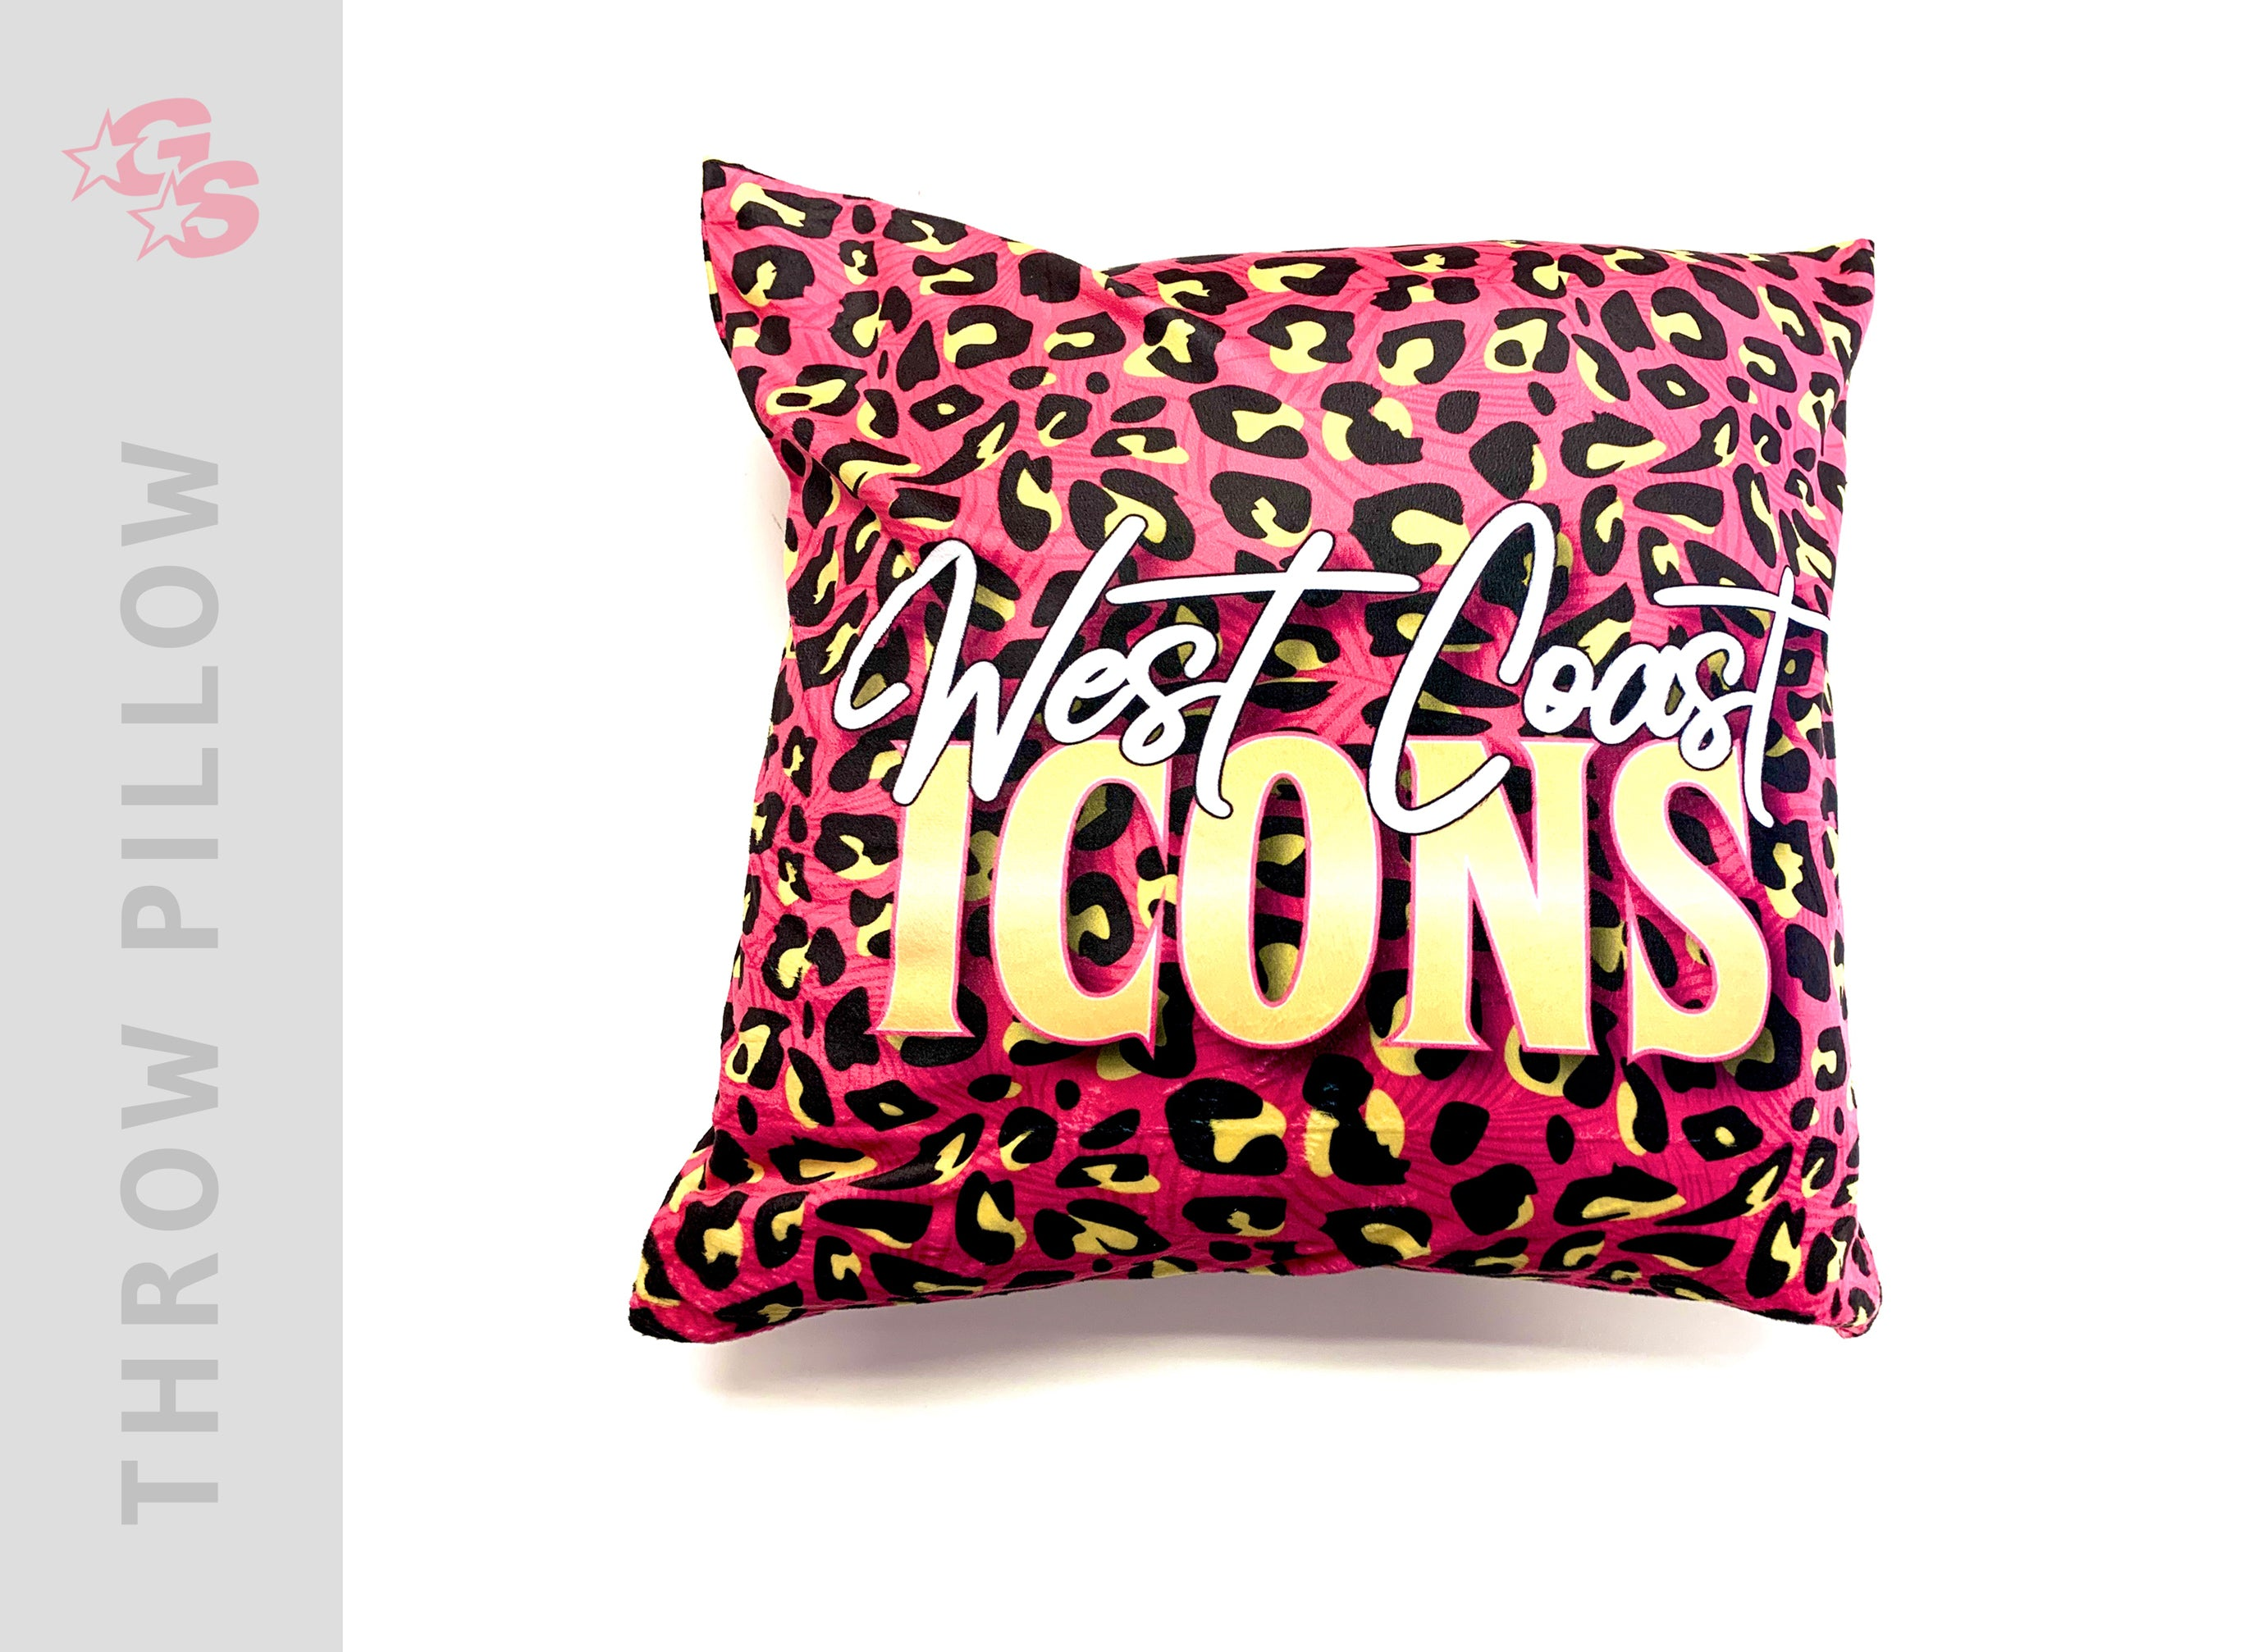 West Coast Icons Square Pillowcase